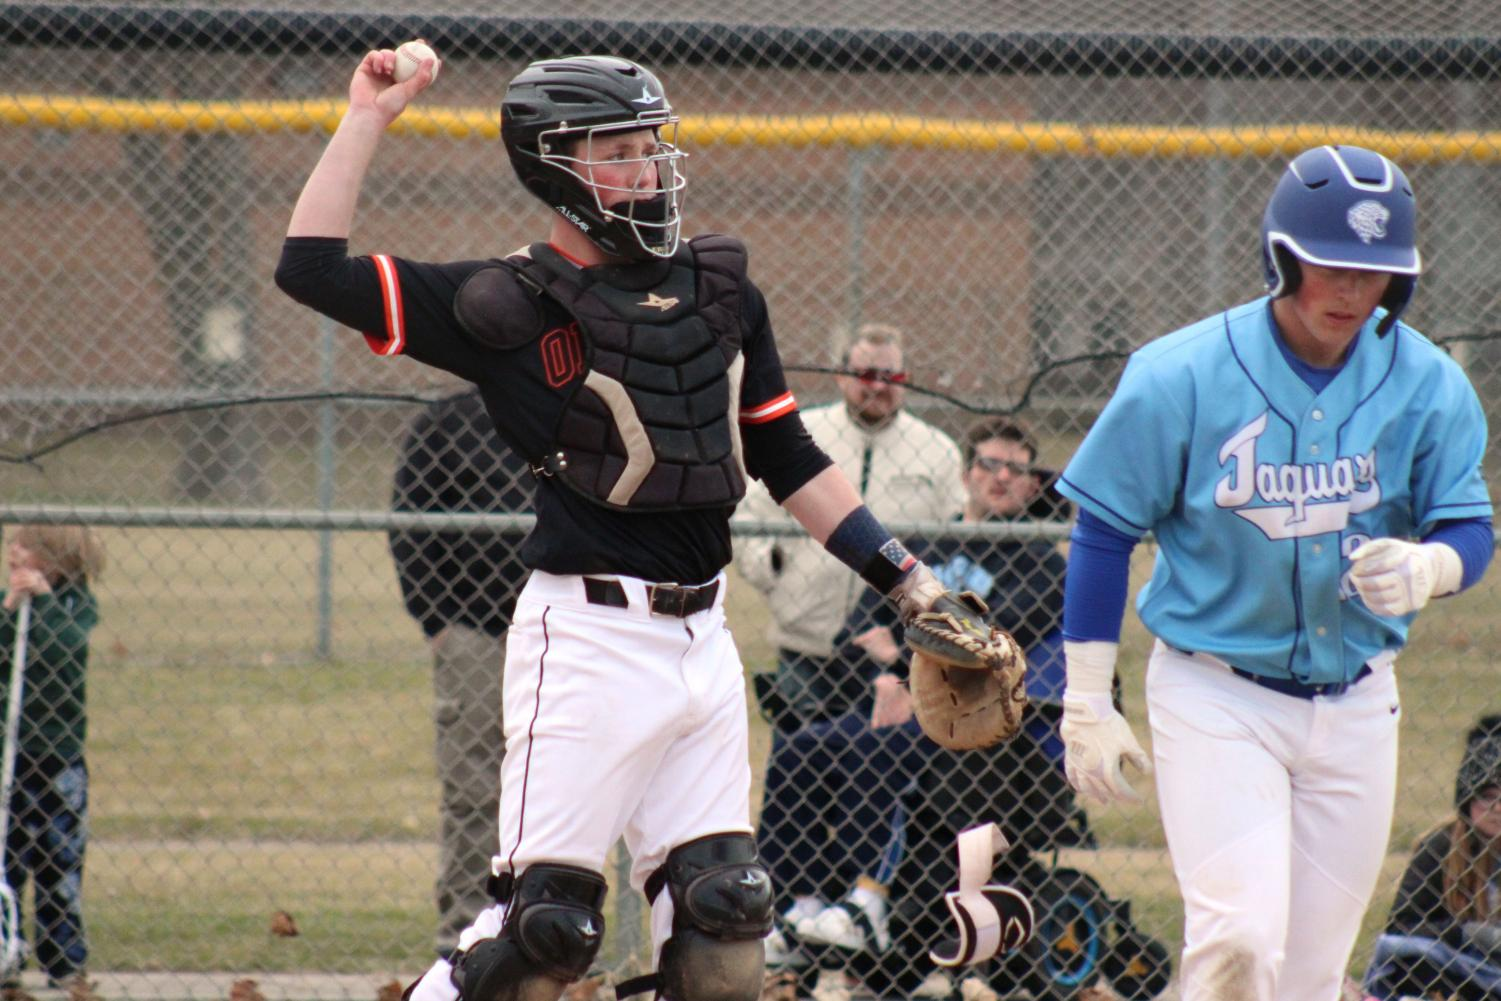 Sophomore Sam Hunt throws baseball back to the pitcher. Park Baseball won the game against Bloomington Jefferson 1-0.